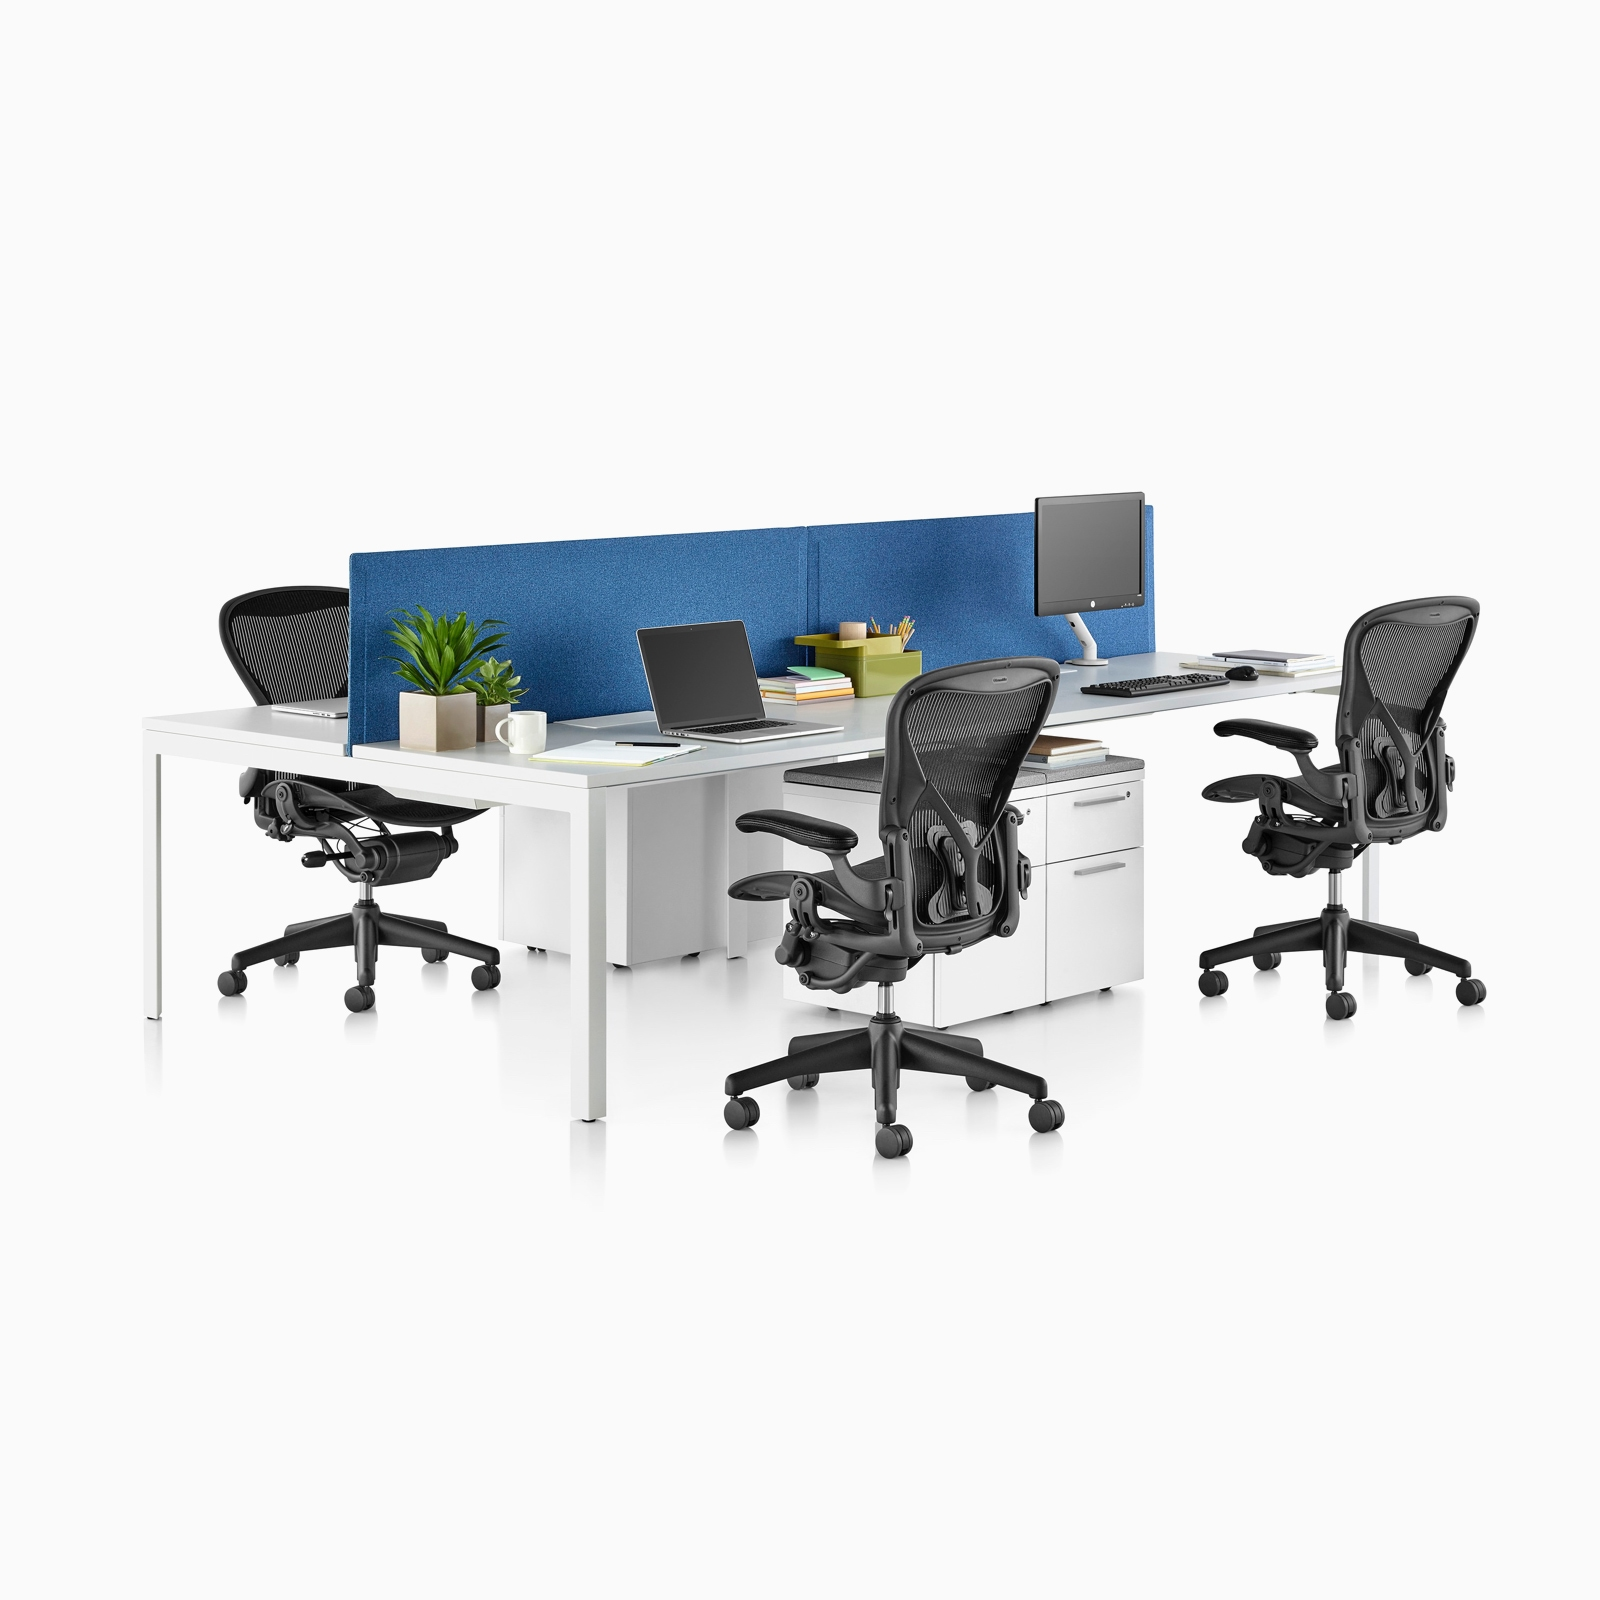 A side view of white Layout Studio desks seperated by a blue divider scrren and three black Aeron Chairs. Select to go to the Layout Studio product page.